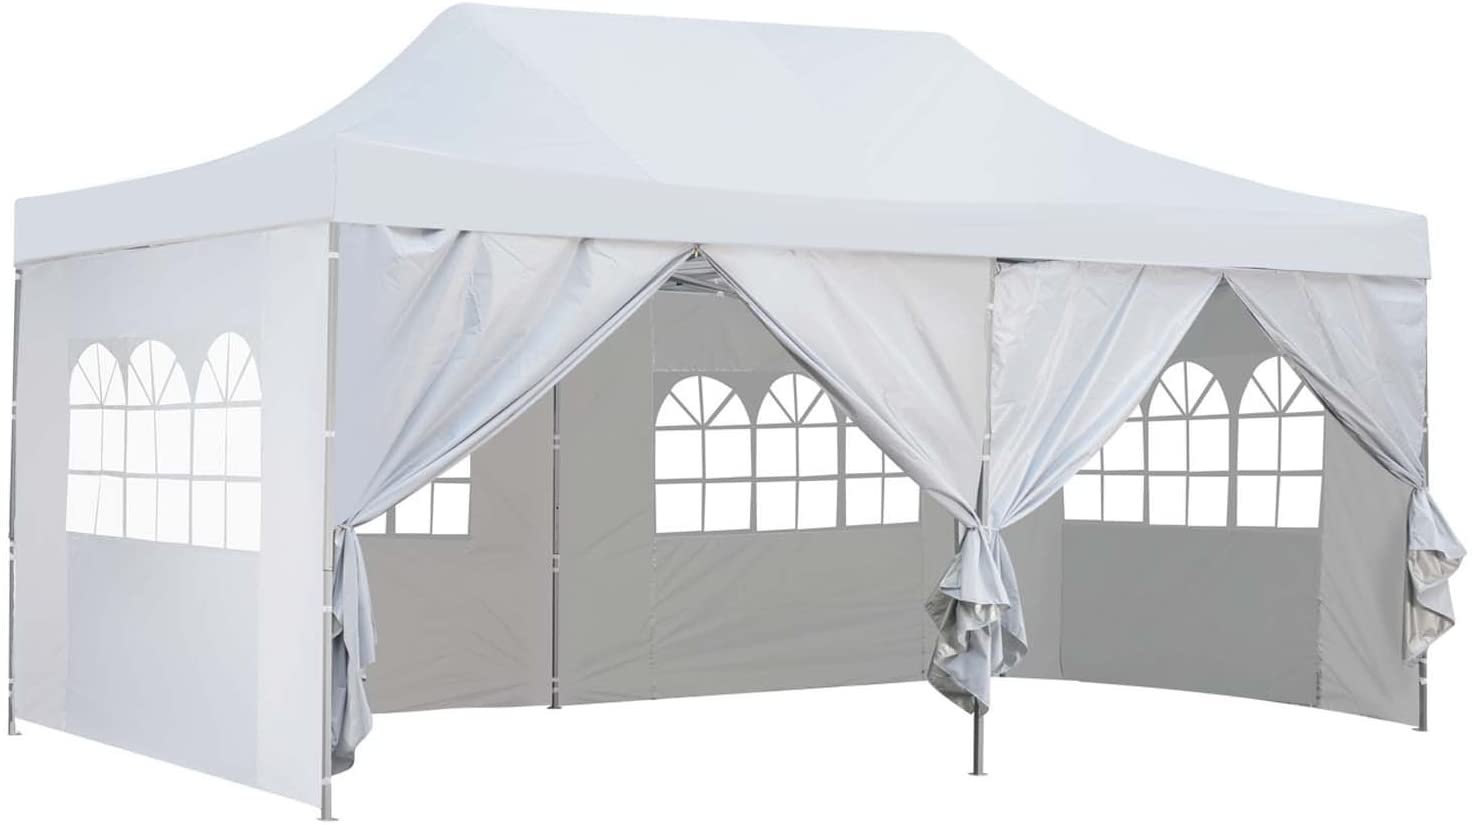 Outdoor Basic 10x20 Ft Pop up Canopy Party Wedding Gazebo Tent Shelter with Removable Side Walls White